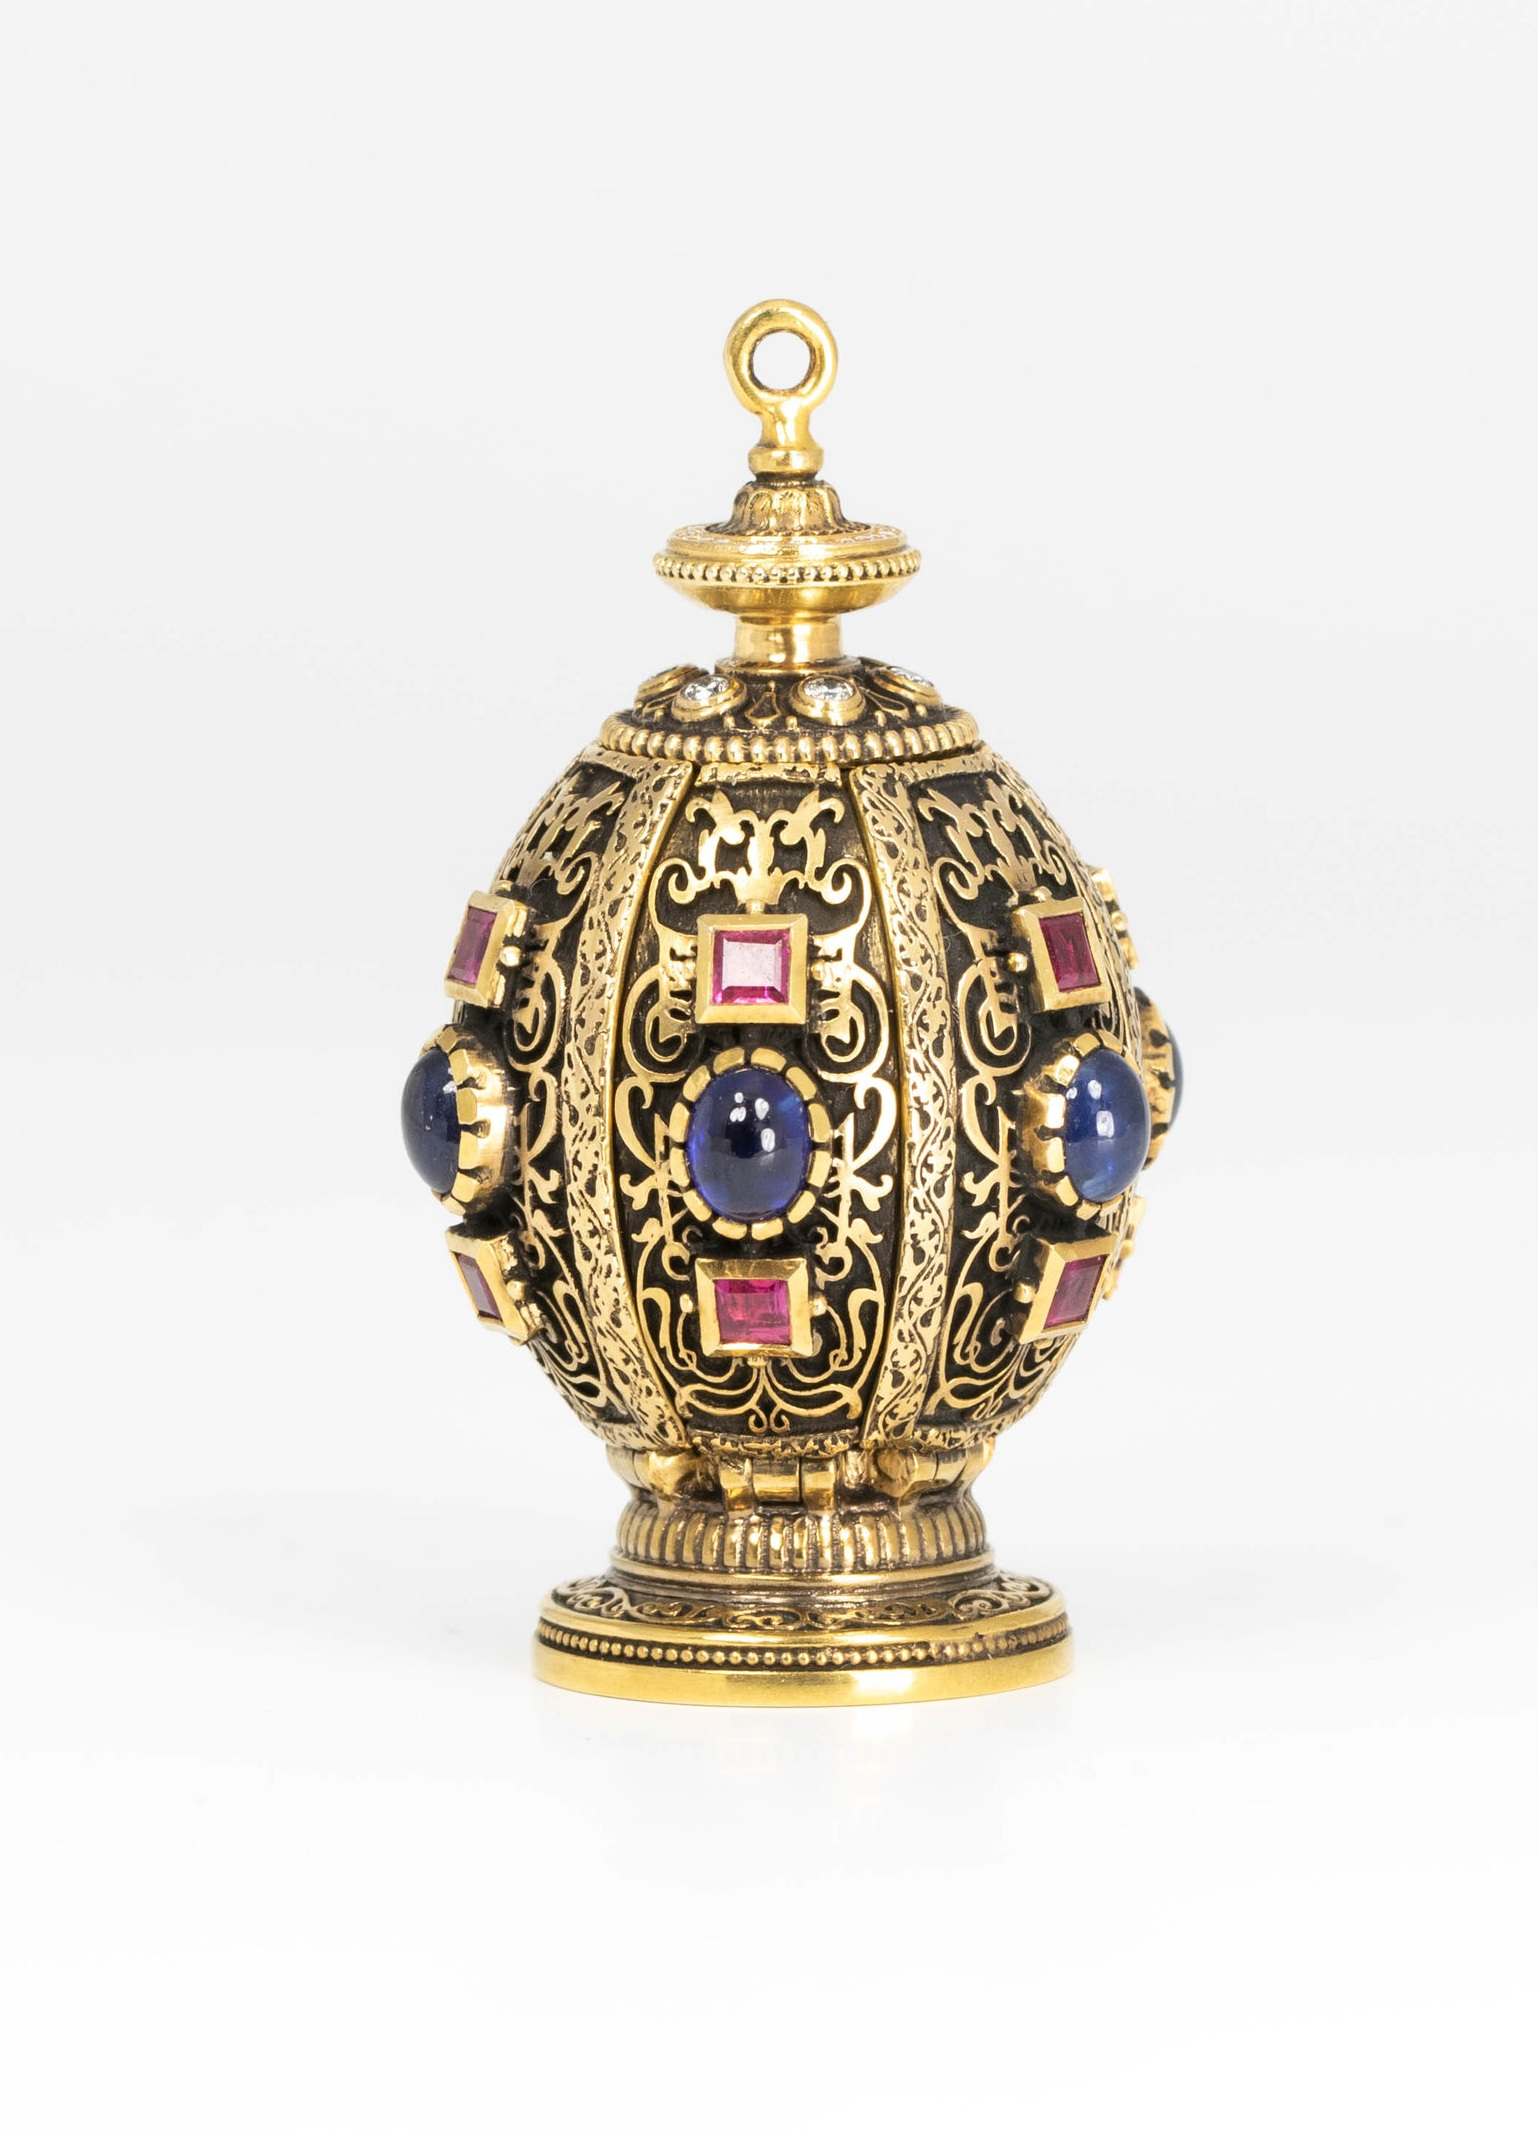 The pomander in the closed position showing the square cut rubies, cabouchon sapphires and almost visible, the diamond set top.